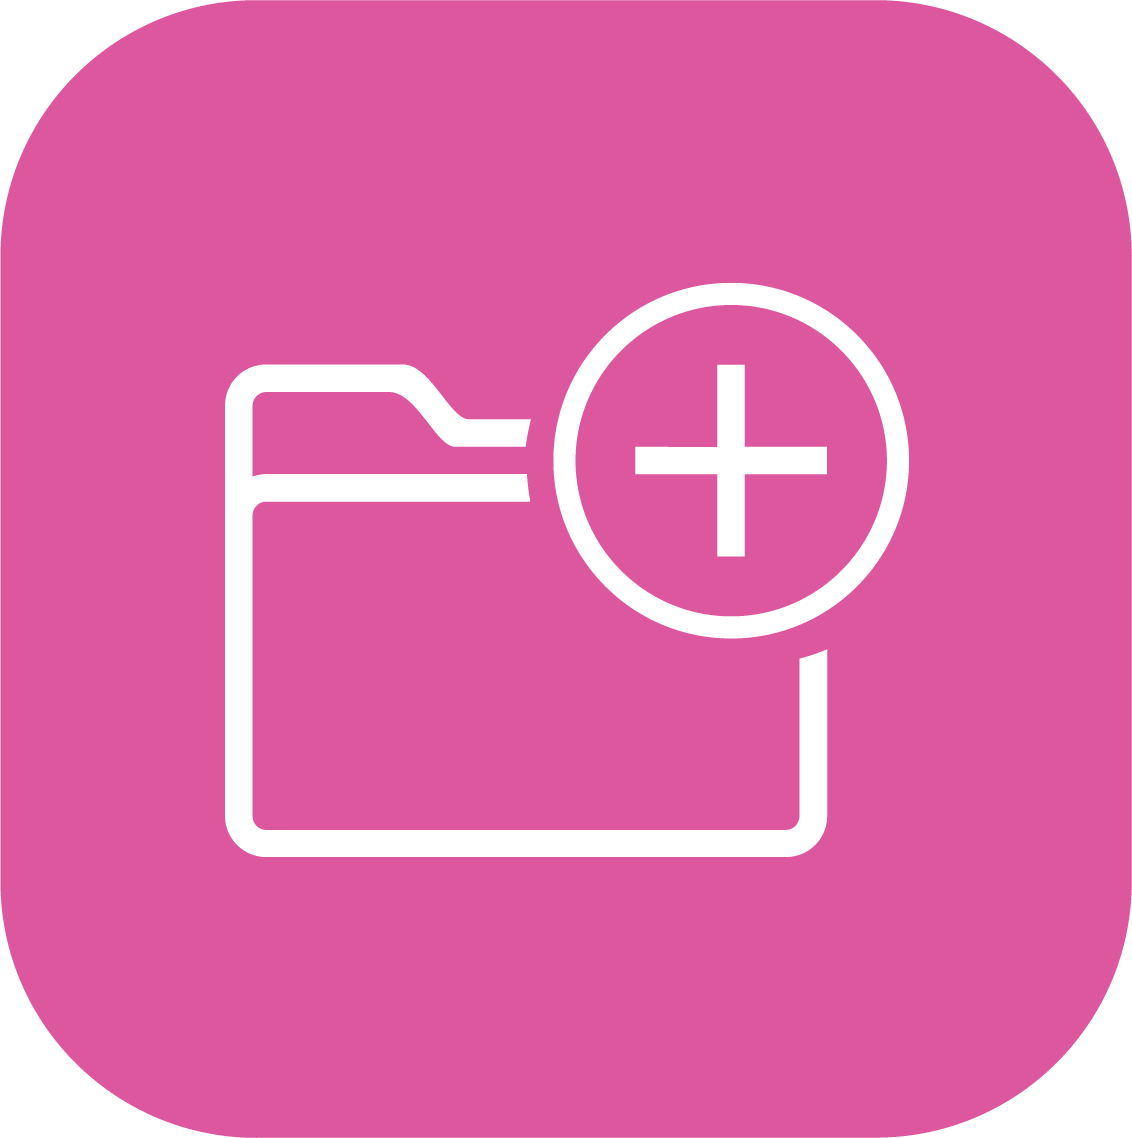 MDM for Shared iPads | Free your Files | dataJAR